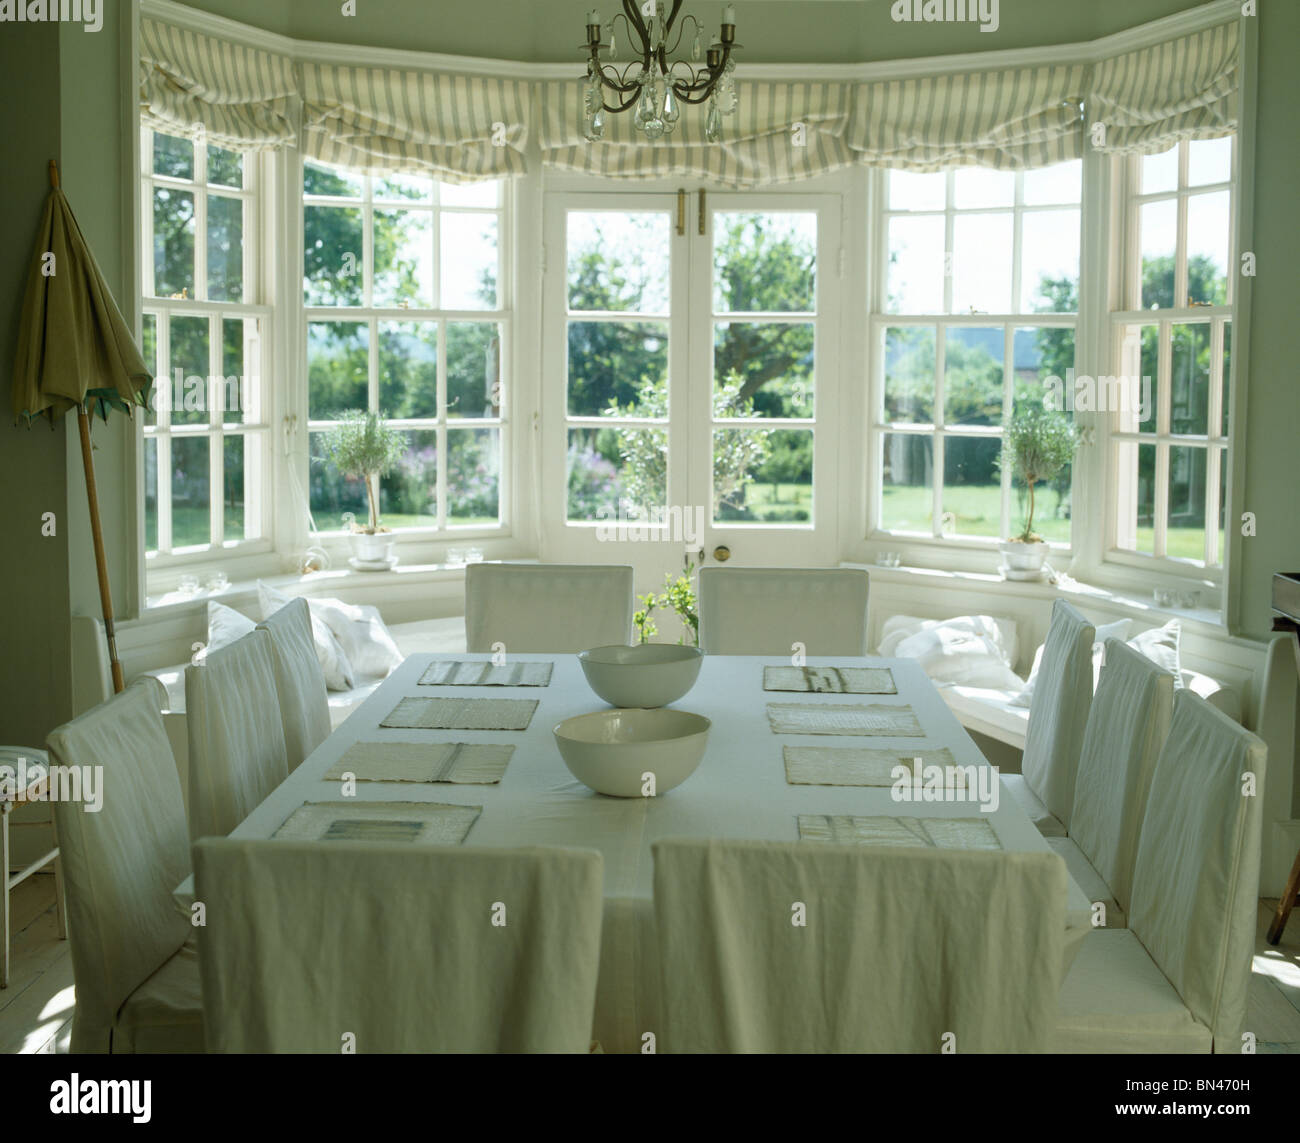 Cream Slip Covers On Chairs In Country Dining Room With Linen Tablecloth Table Front Of Bay Window Striped Blinds